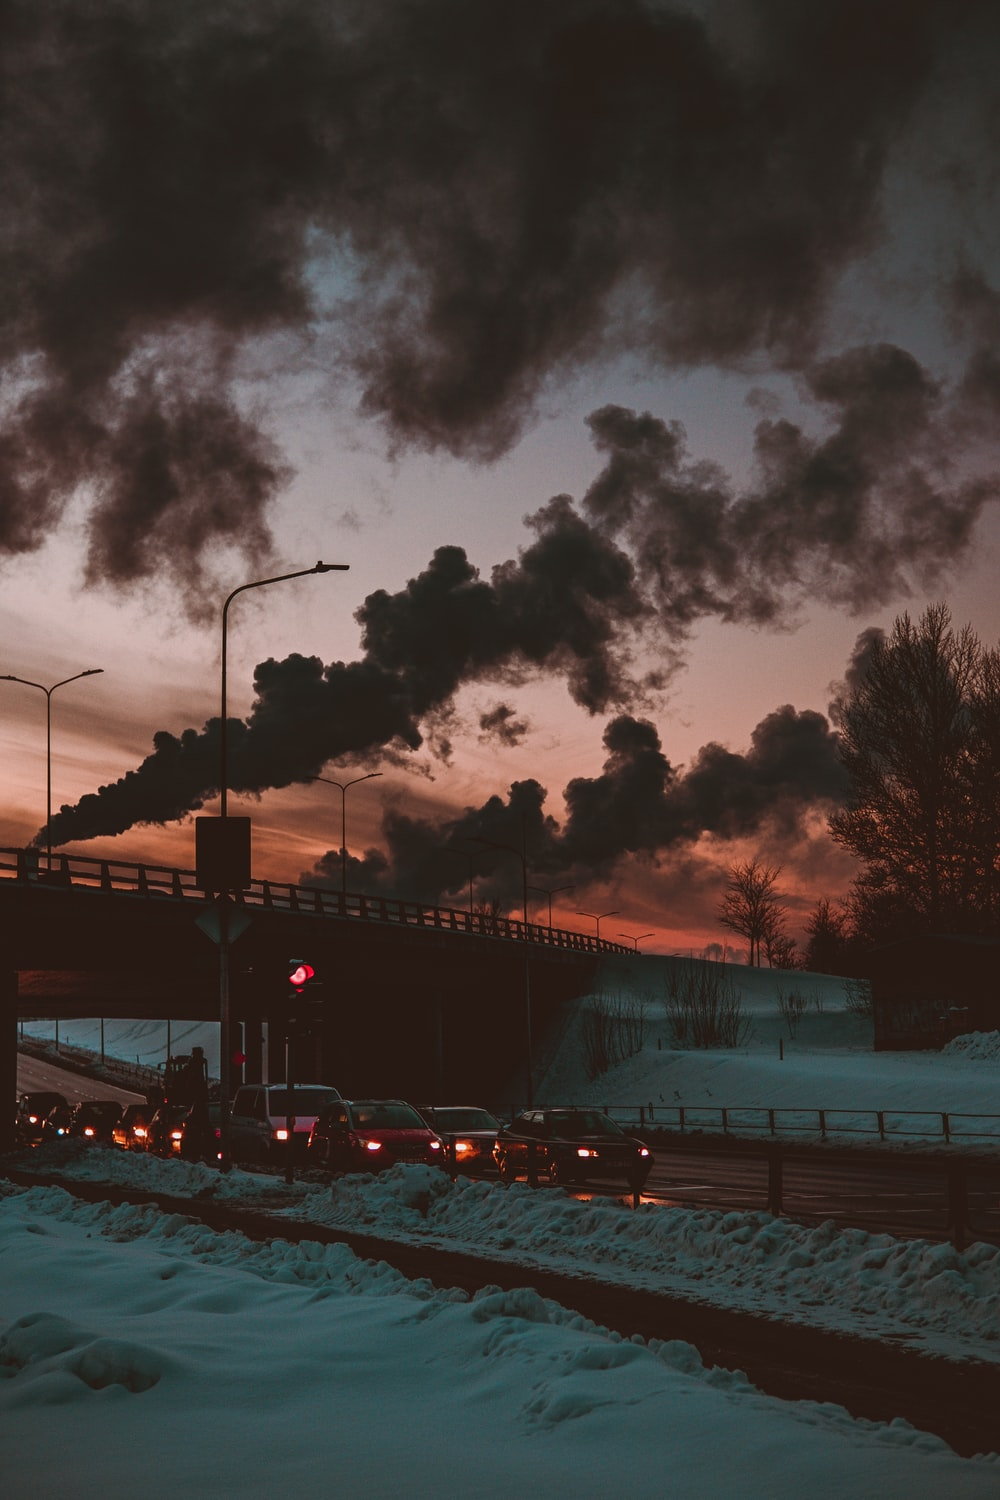 cars on road under cloudy sky during night time